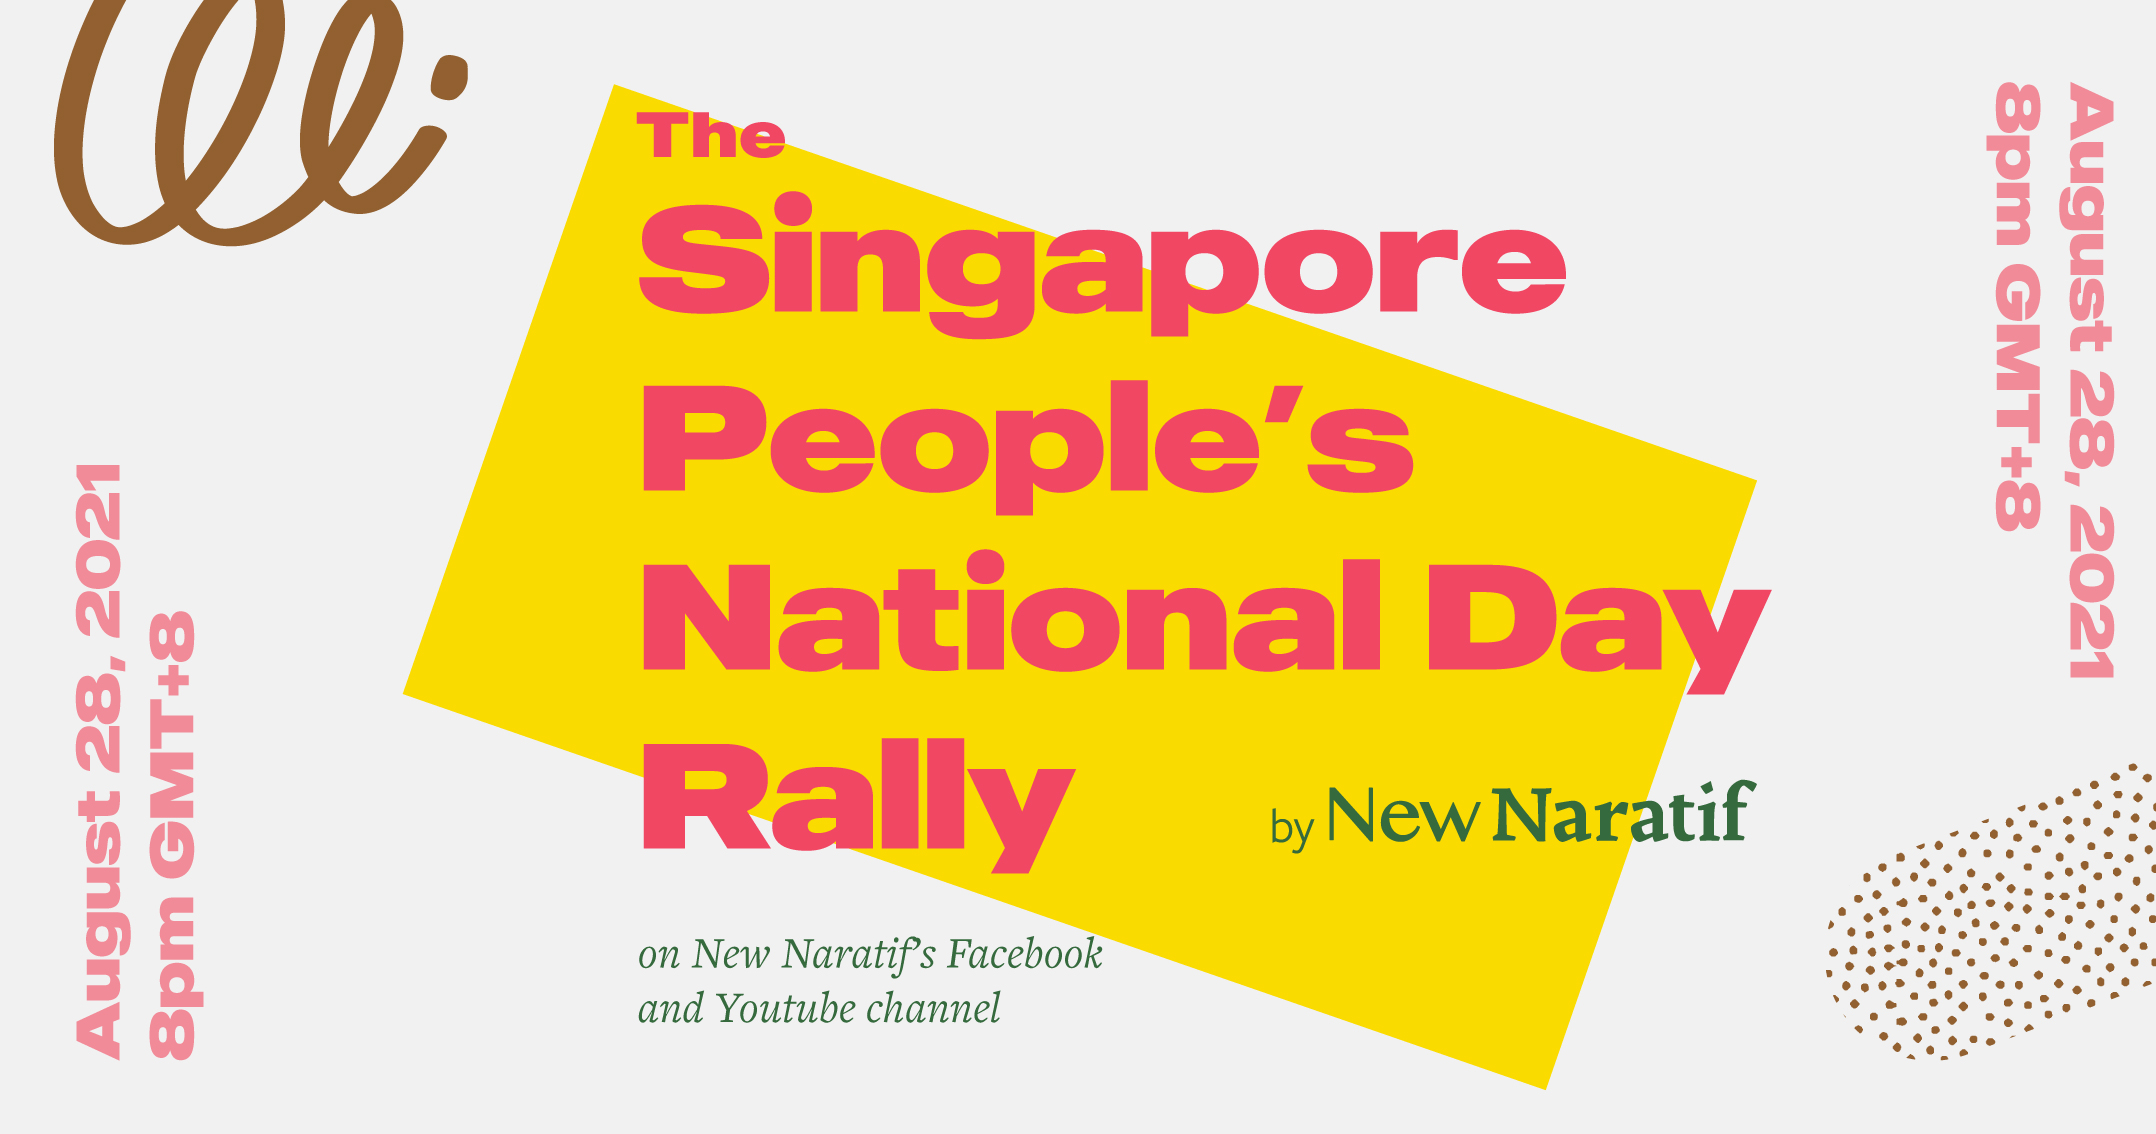 The Singapore People's National Day Rally by New Naratif on New Naratif's Facebook and YouTube channel. Saturday 28 August at 8PM GMT+8